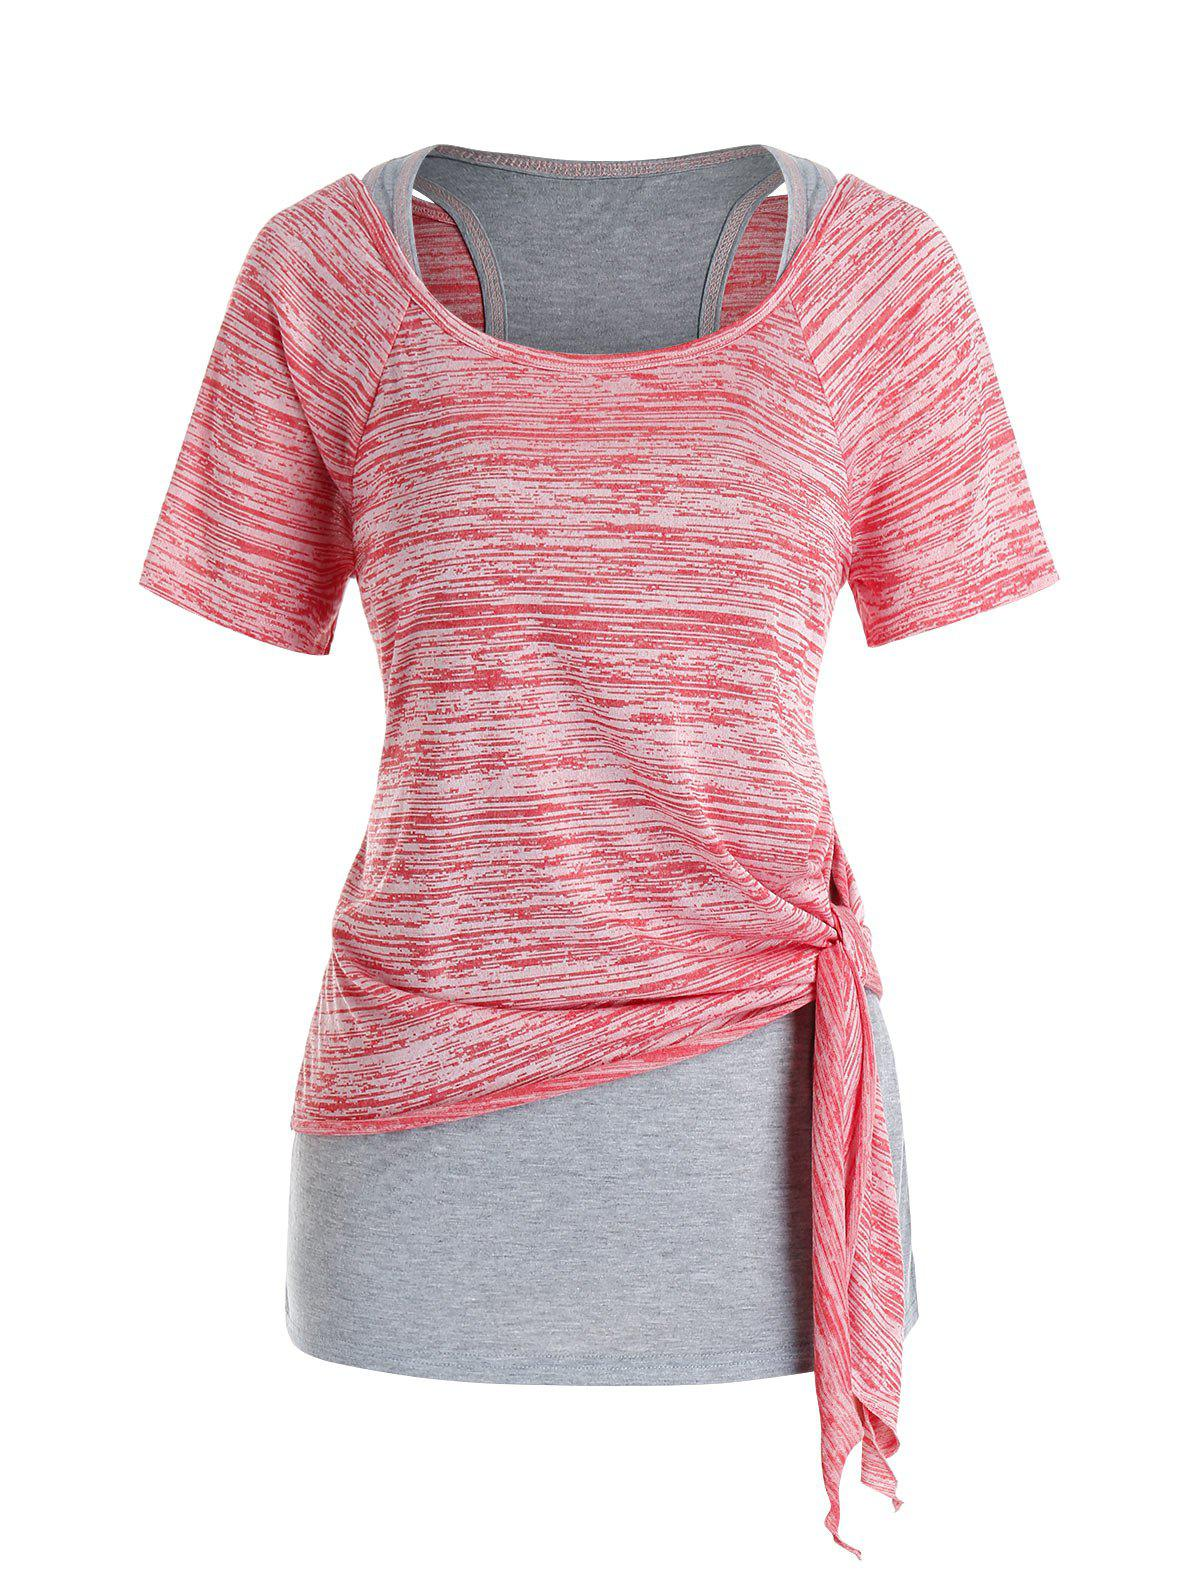 Plus Size Marled Tie Knot T Shirt and Racerback Tank Top Set - PINK 4X